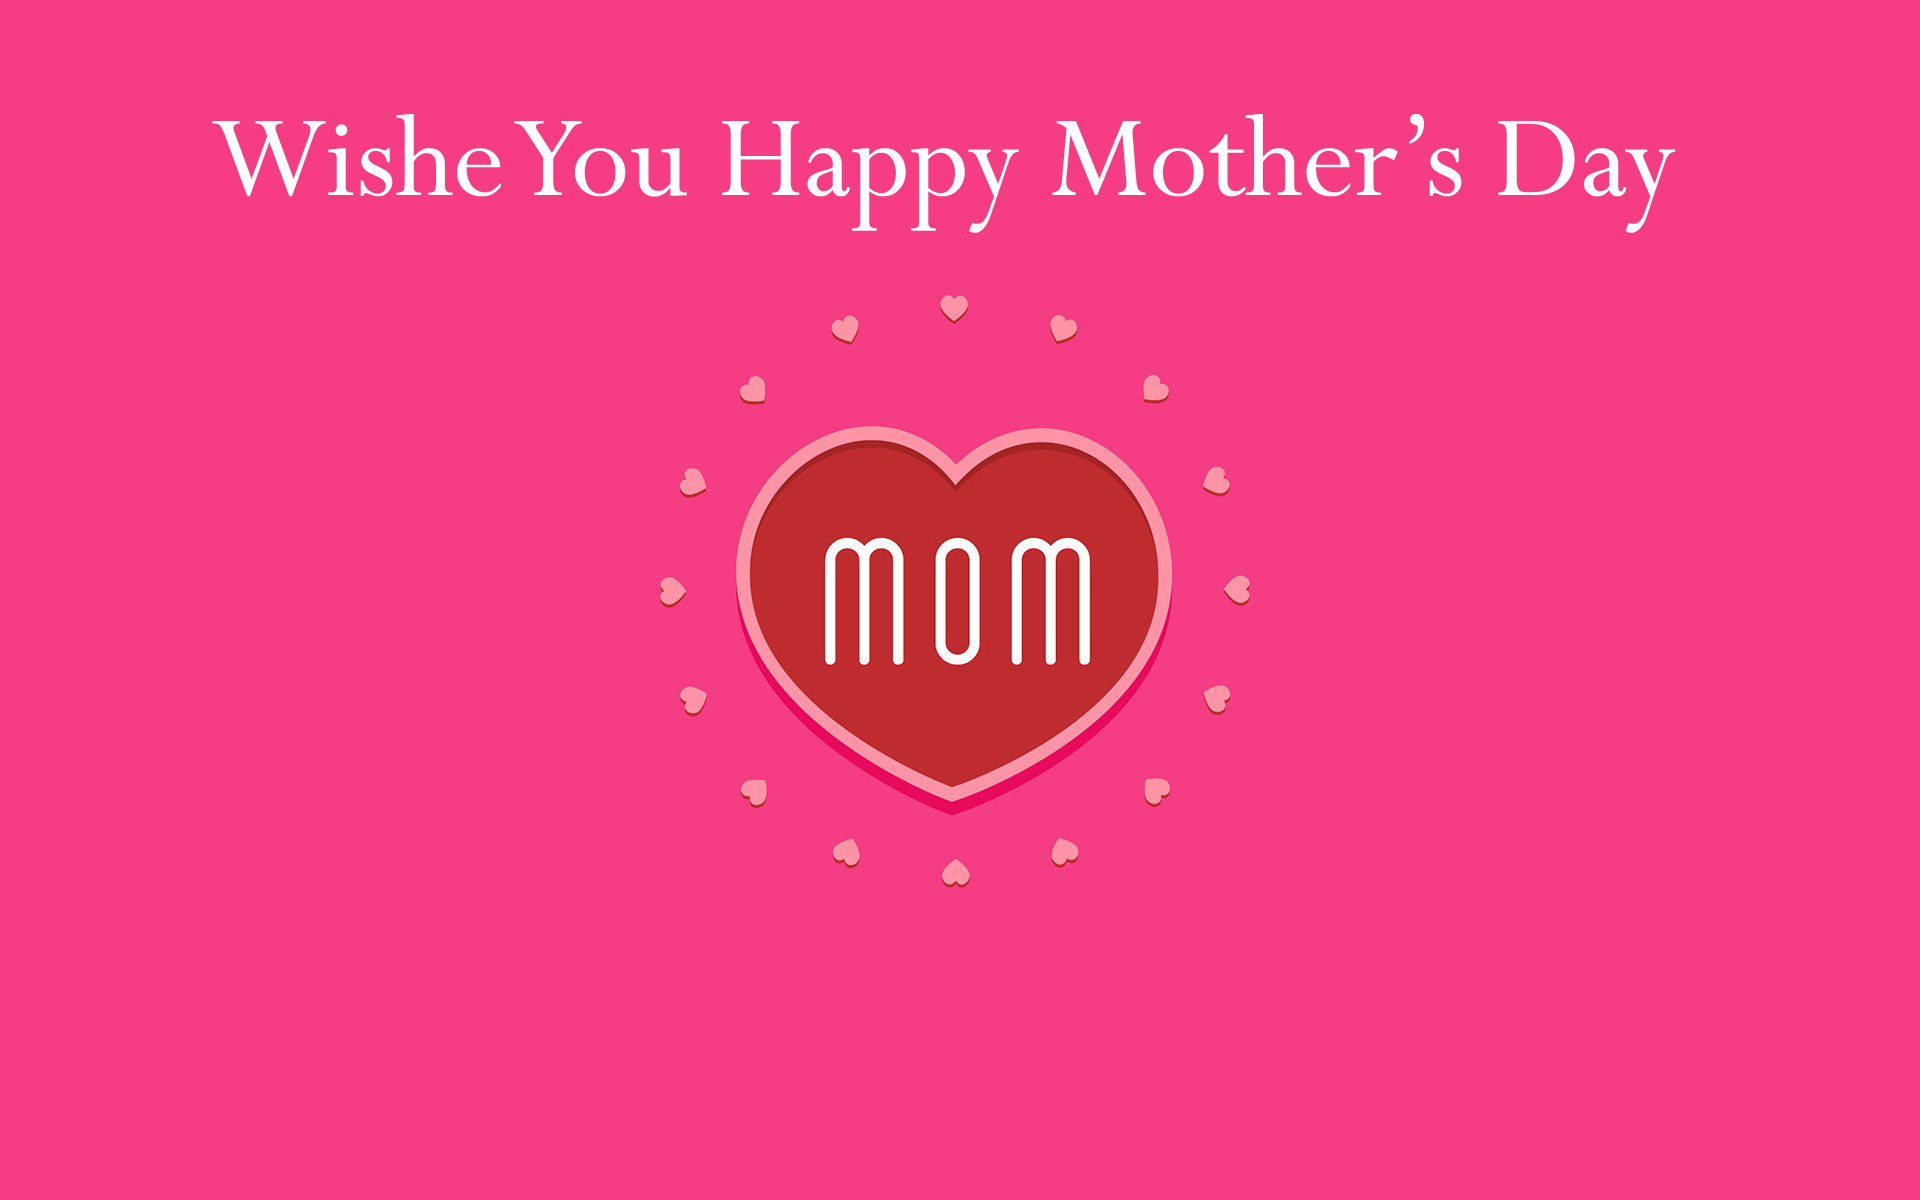 mothers day wallpaper collection for desktop computer